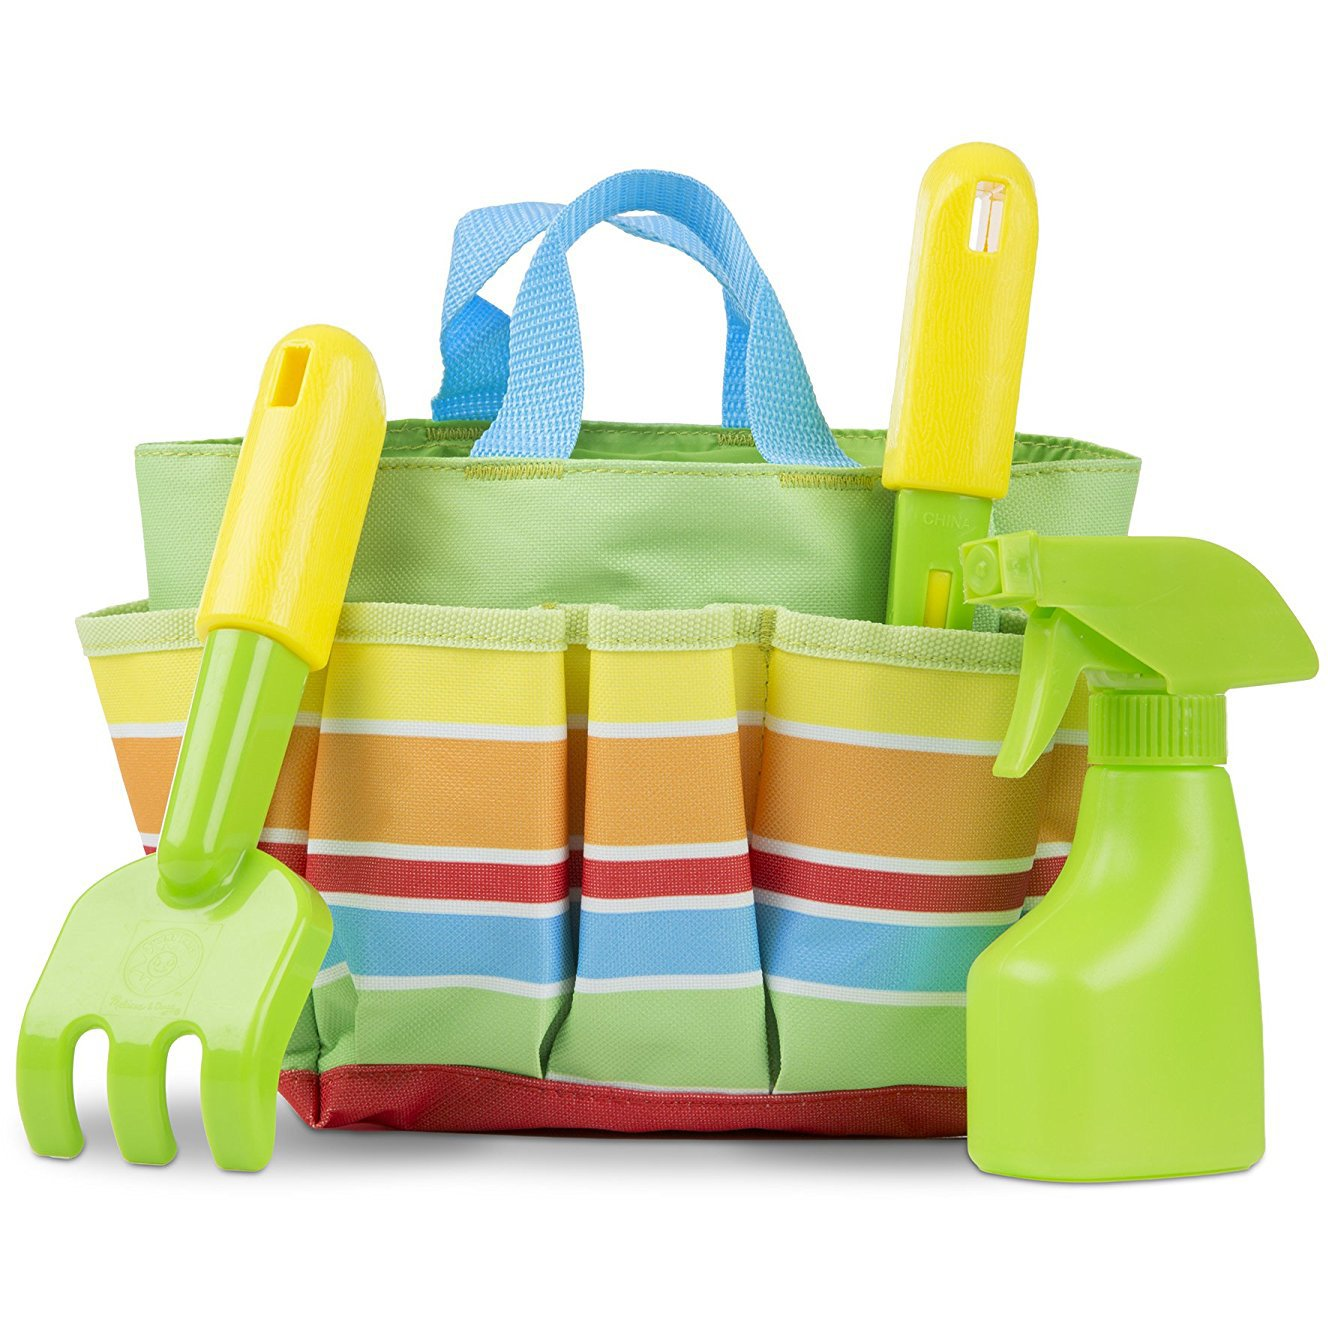 Melissa /& Doug Giddy Buggy Tote Set: Sunny Patch Outdoor Play Series #06741 1 Scratch Art Mini-Pad Bundle BCC9447191